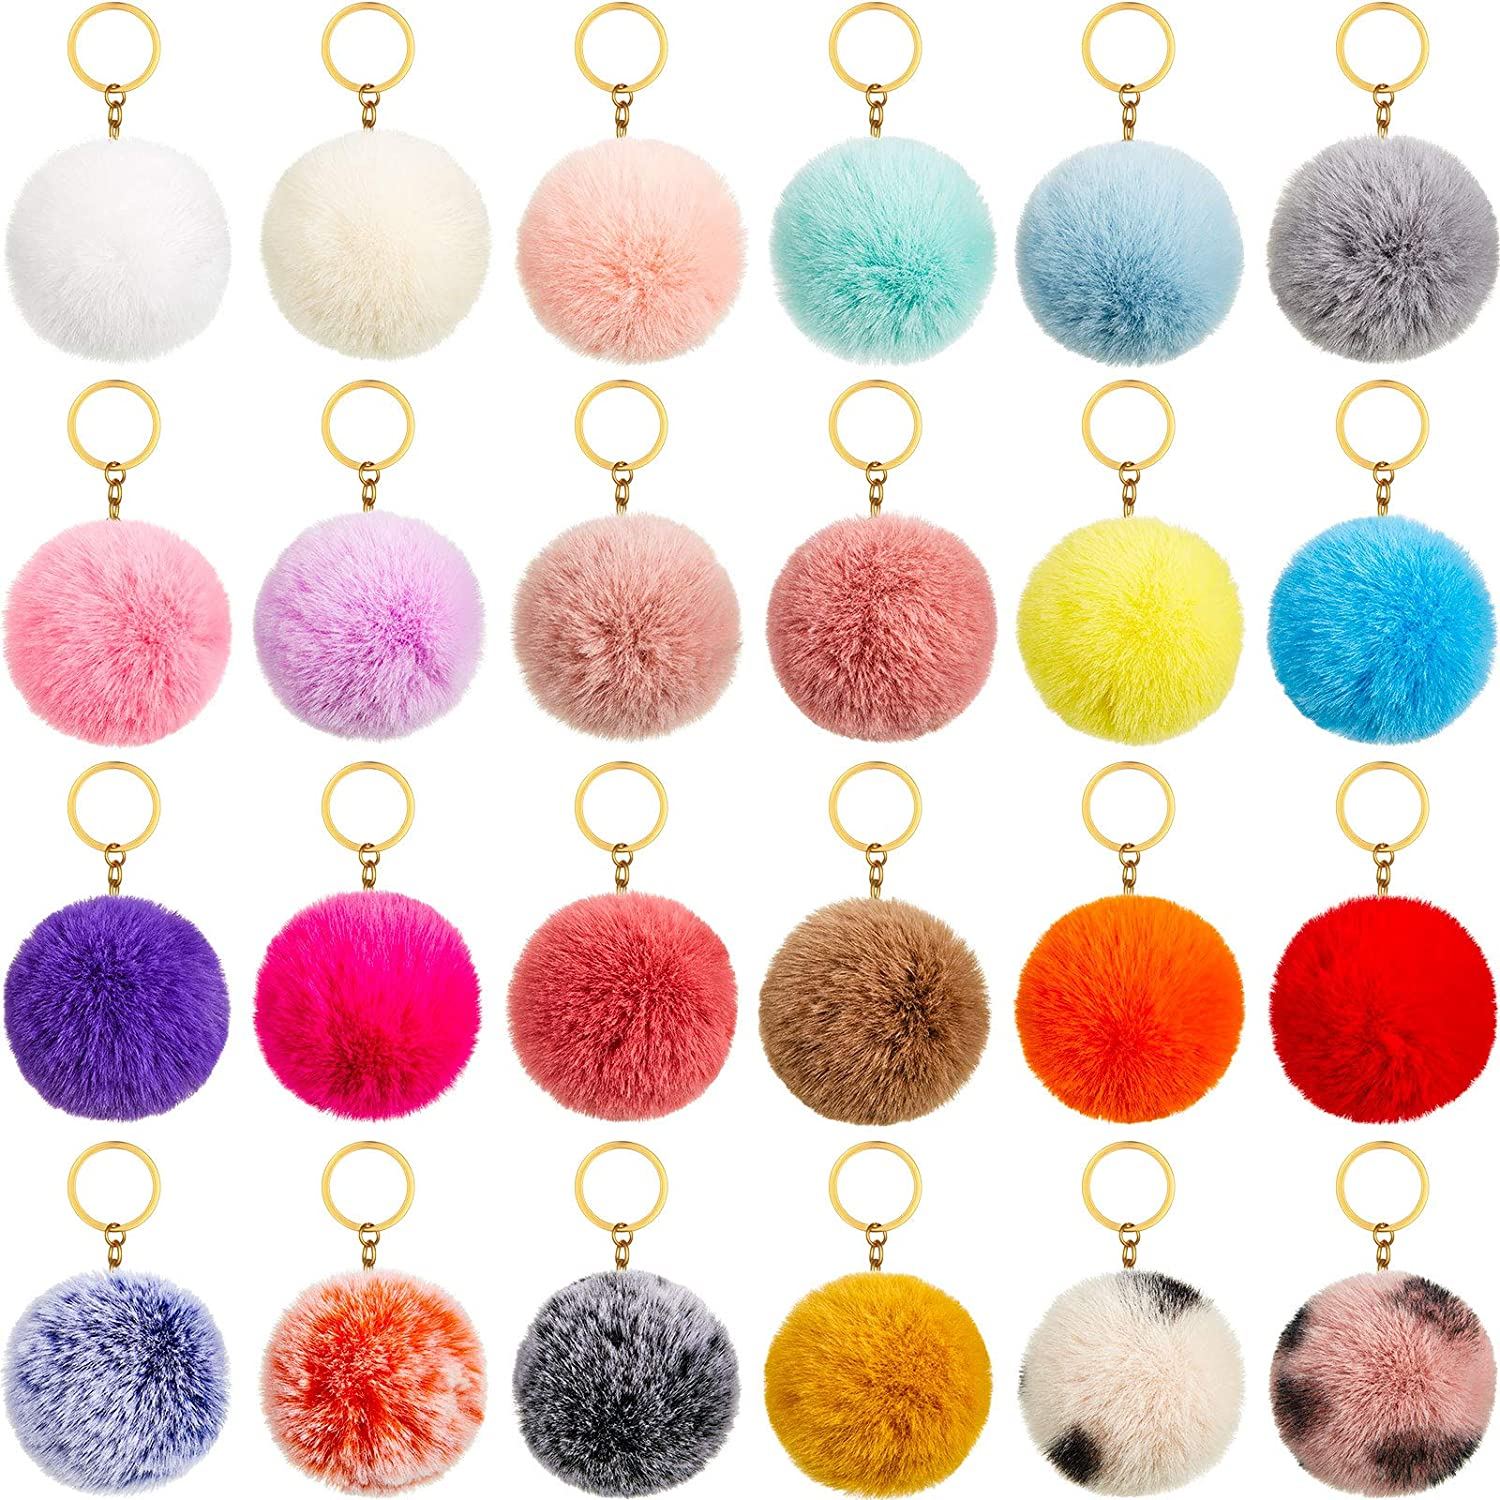 24 Pieces Colorful Pom Poms Keychains Fluffy Ball Pompoms Key Chain Faux Fur Pompoms Keyring Fluffy Accessories for Girls Women Hats Shoes Bags Supplies